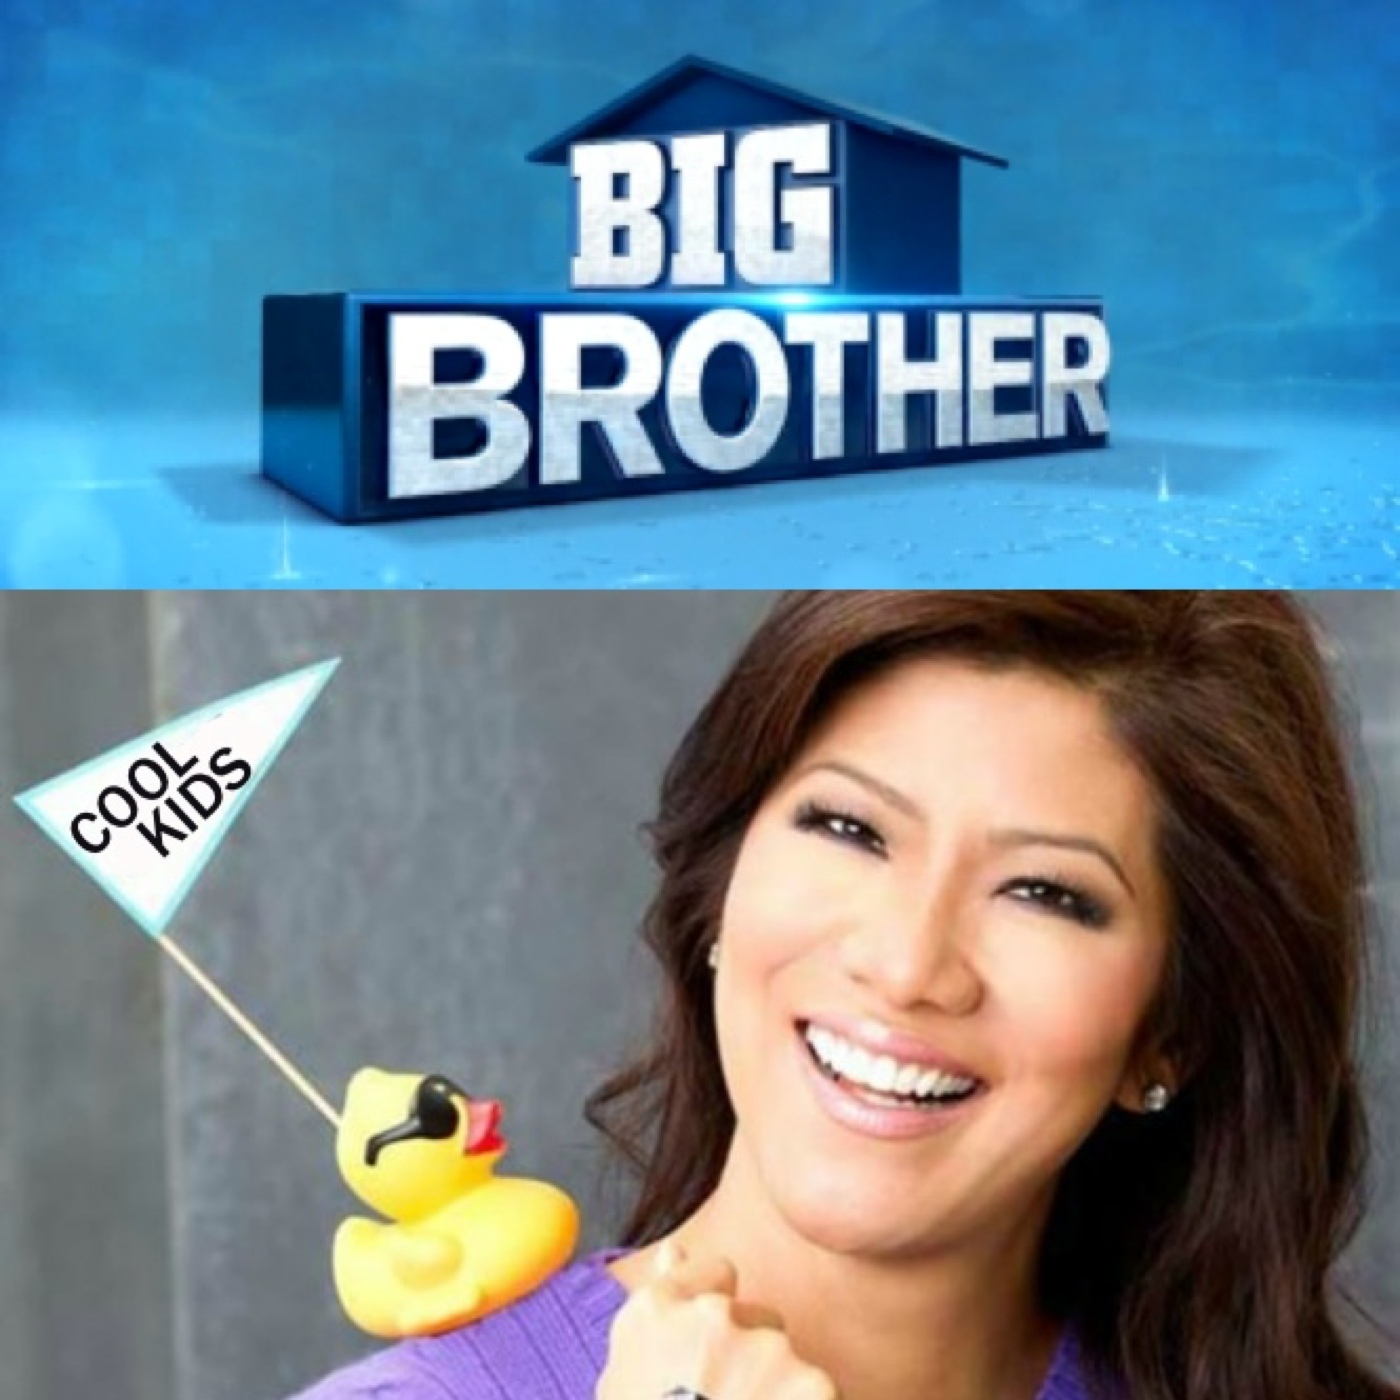 Super Cool Big Brother Podcast for Cool Kids